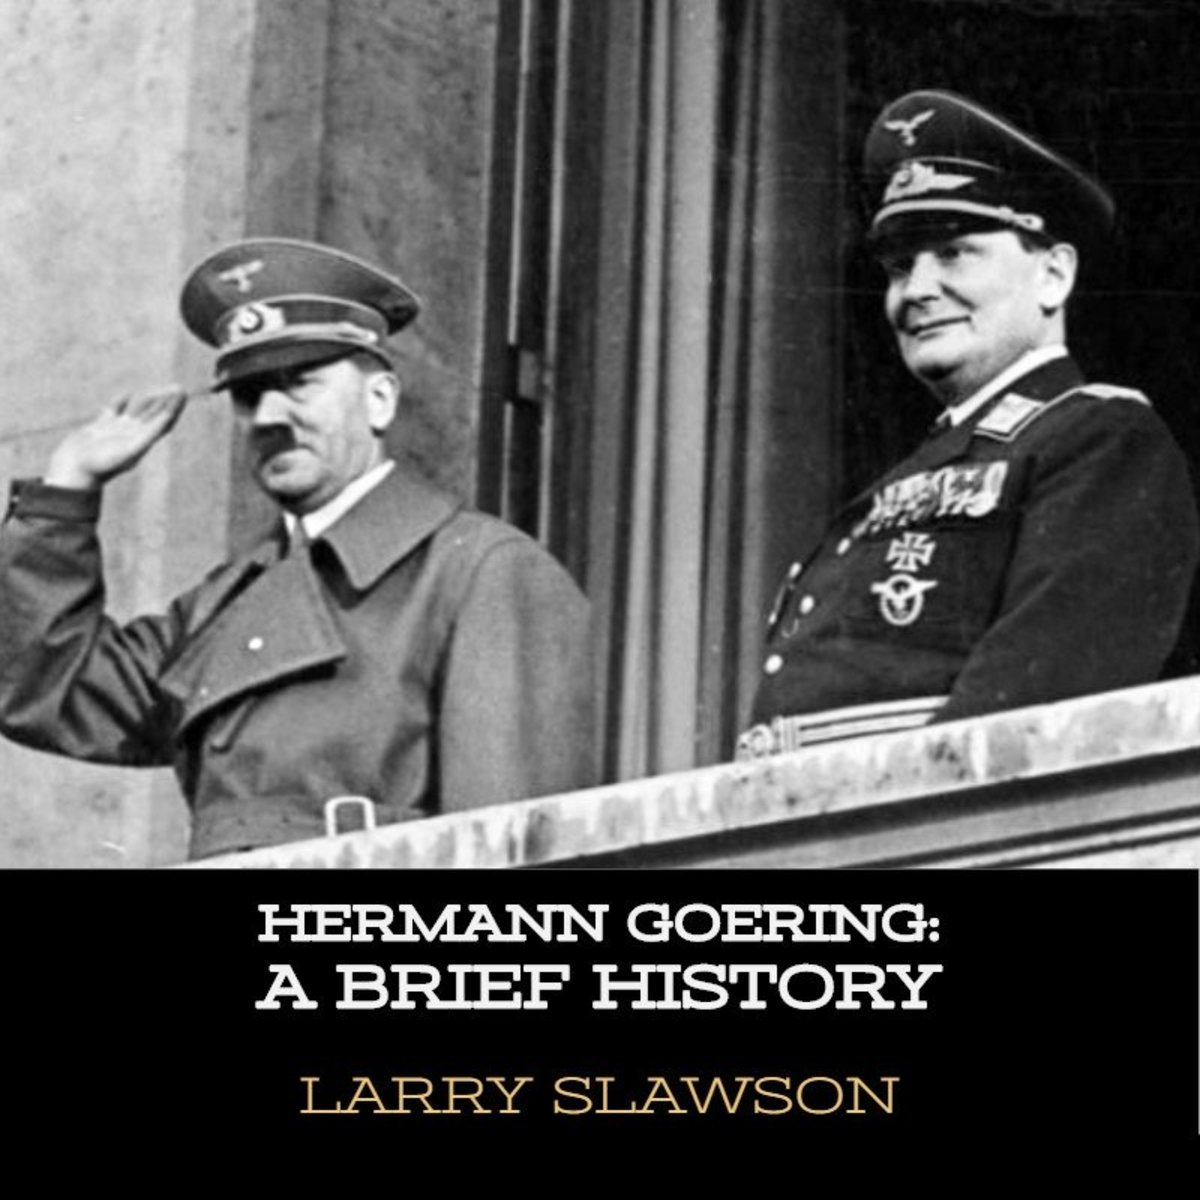 Hermann Goering: A Brief History